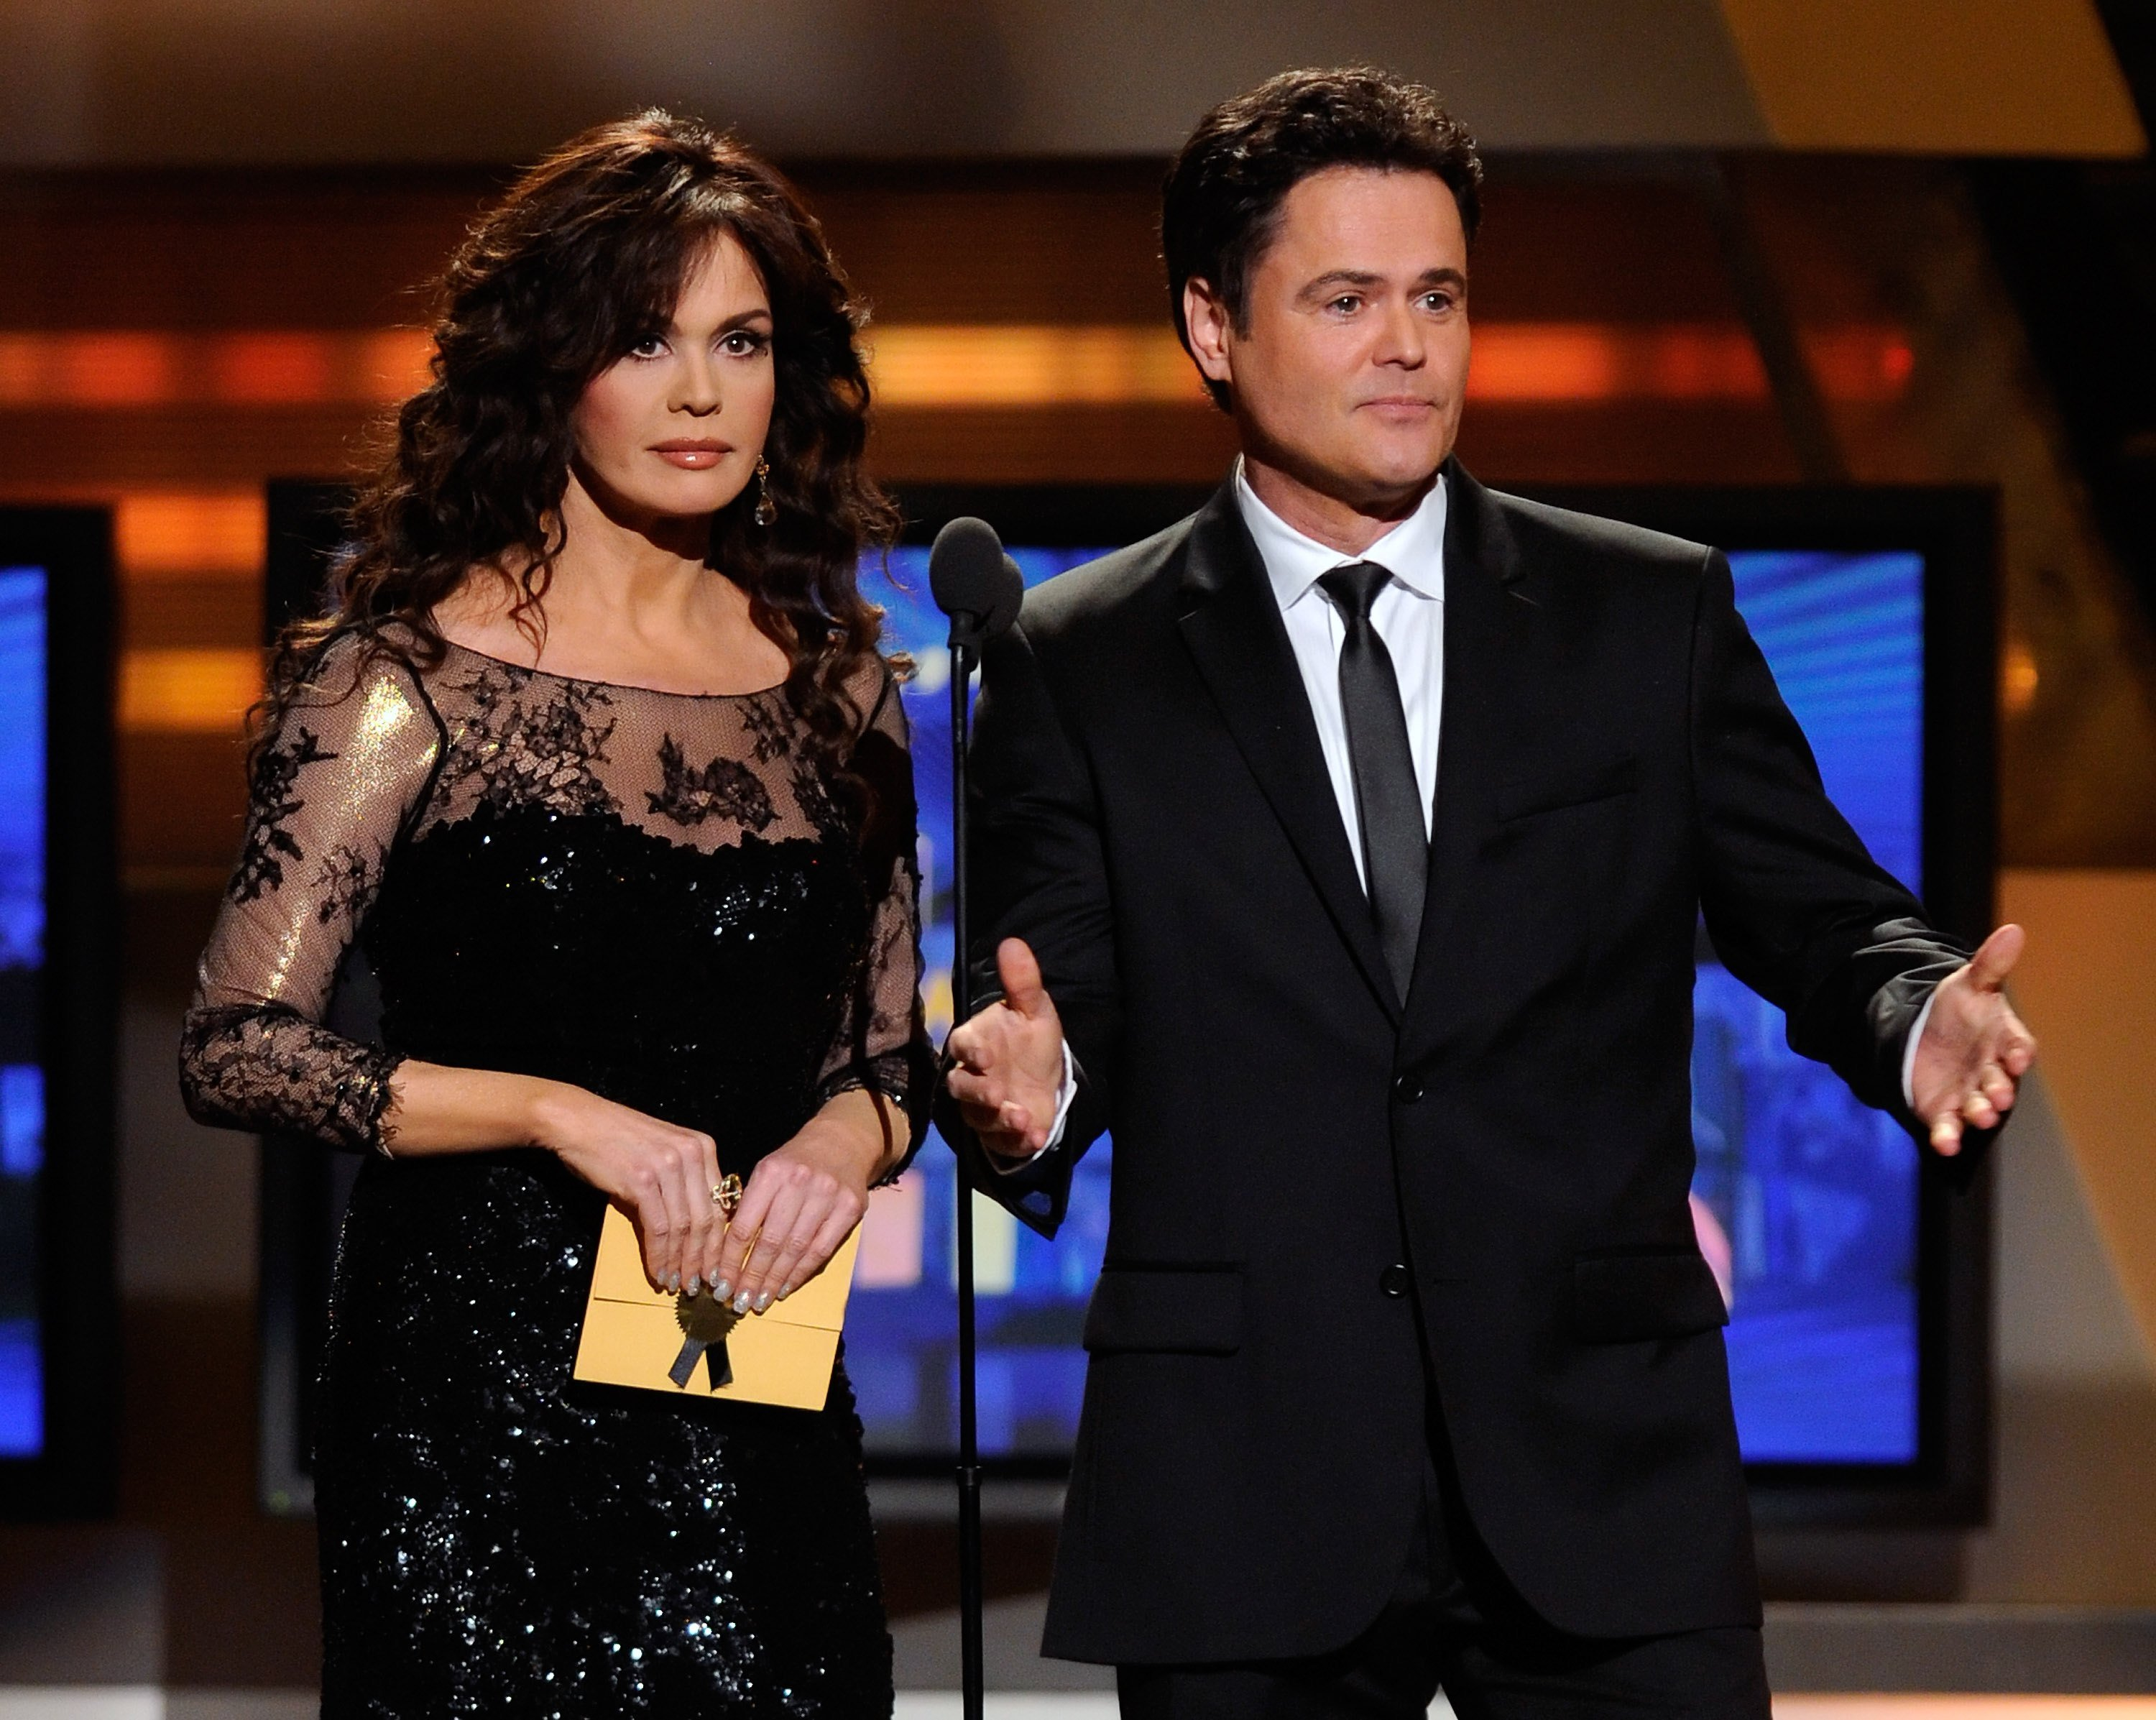 Marie and Donny Osmond during a 2011 awarding ceremony in Las Vegas. | Photo: Getty Images